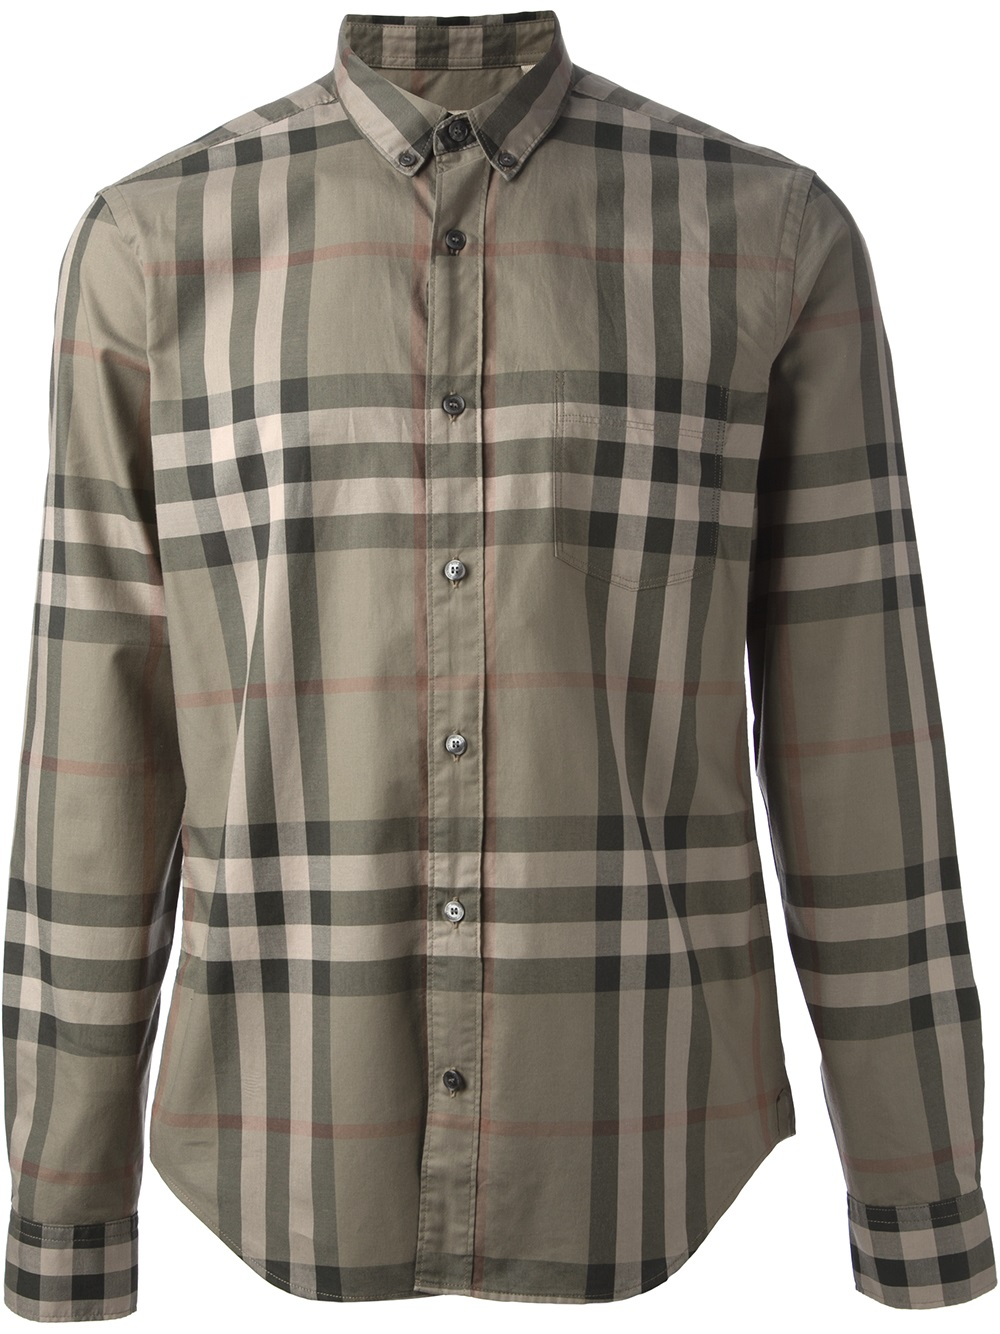 Burberry brit 39 nova check 39 shirt in green for men lyst for Burberry brit checked shirt